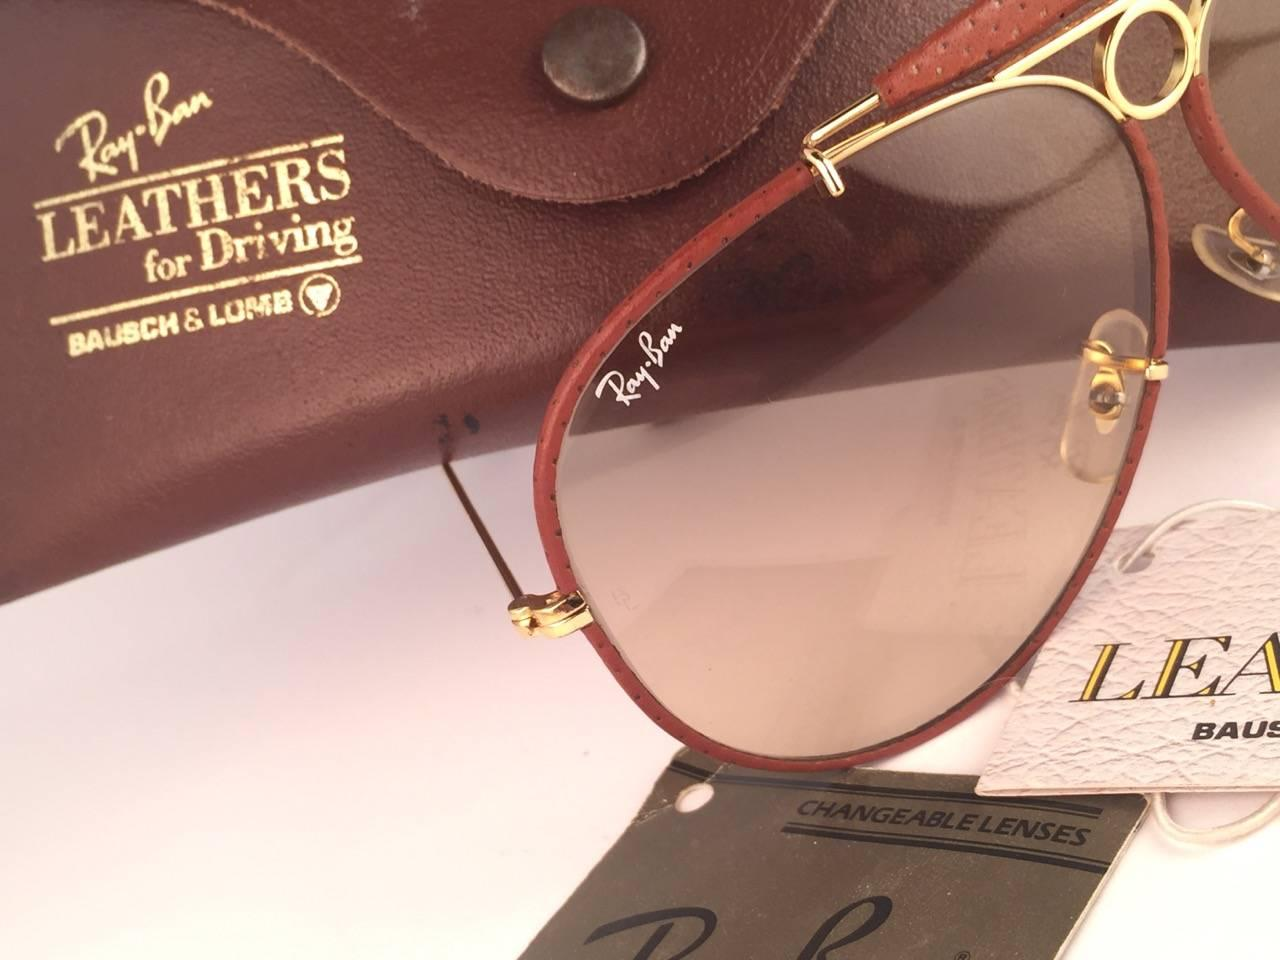 7a707aaa3b1 New Vintage Ray Ban Ostrich Leather Shooter 62Mm B L Sunglasses at 1stdibs